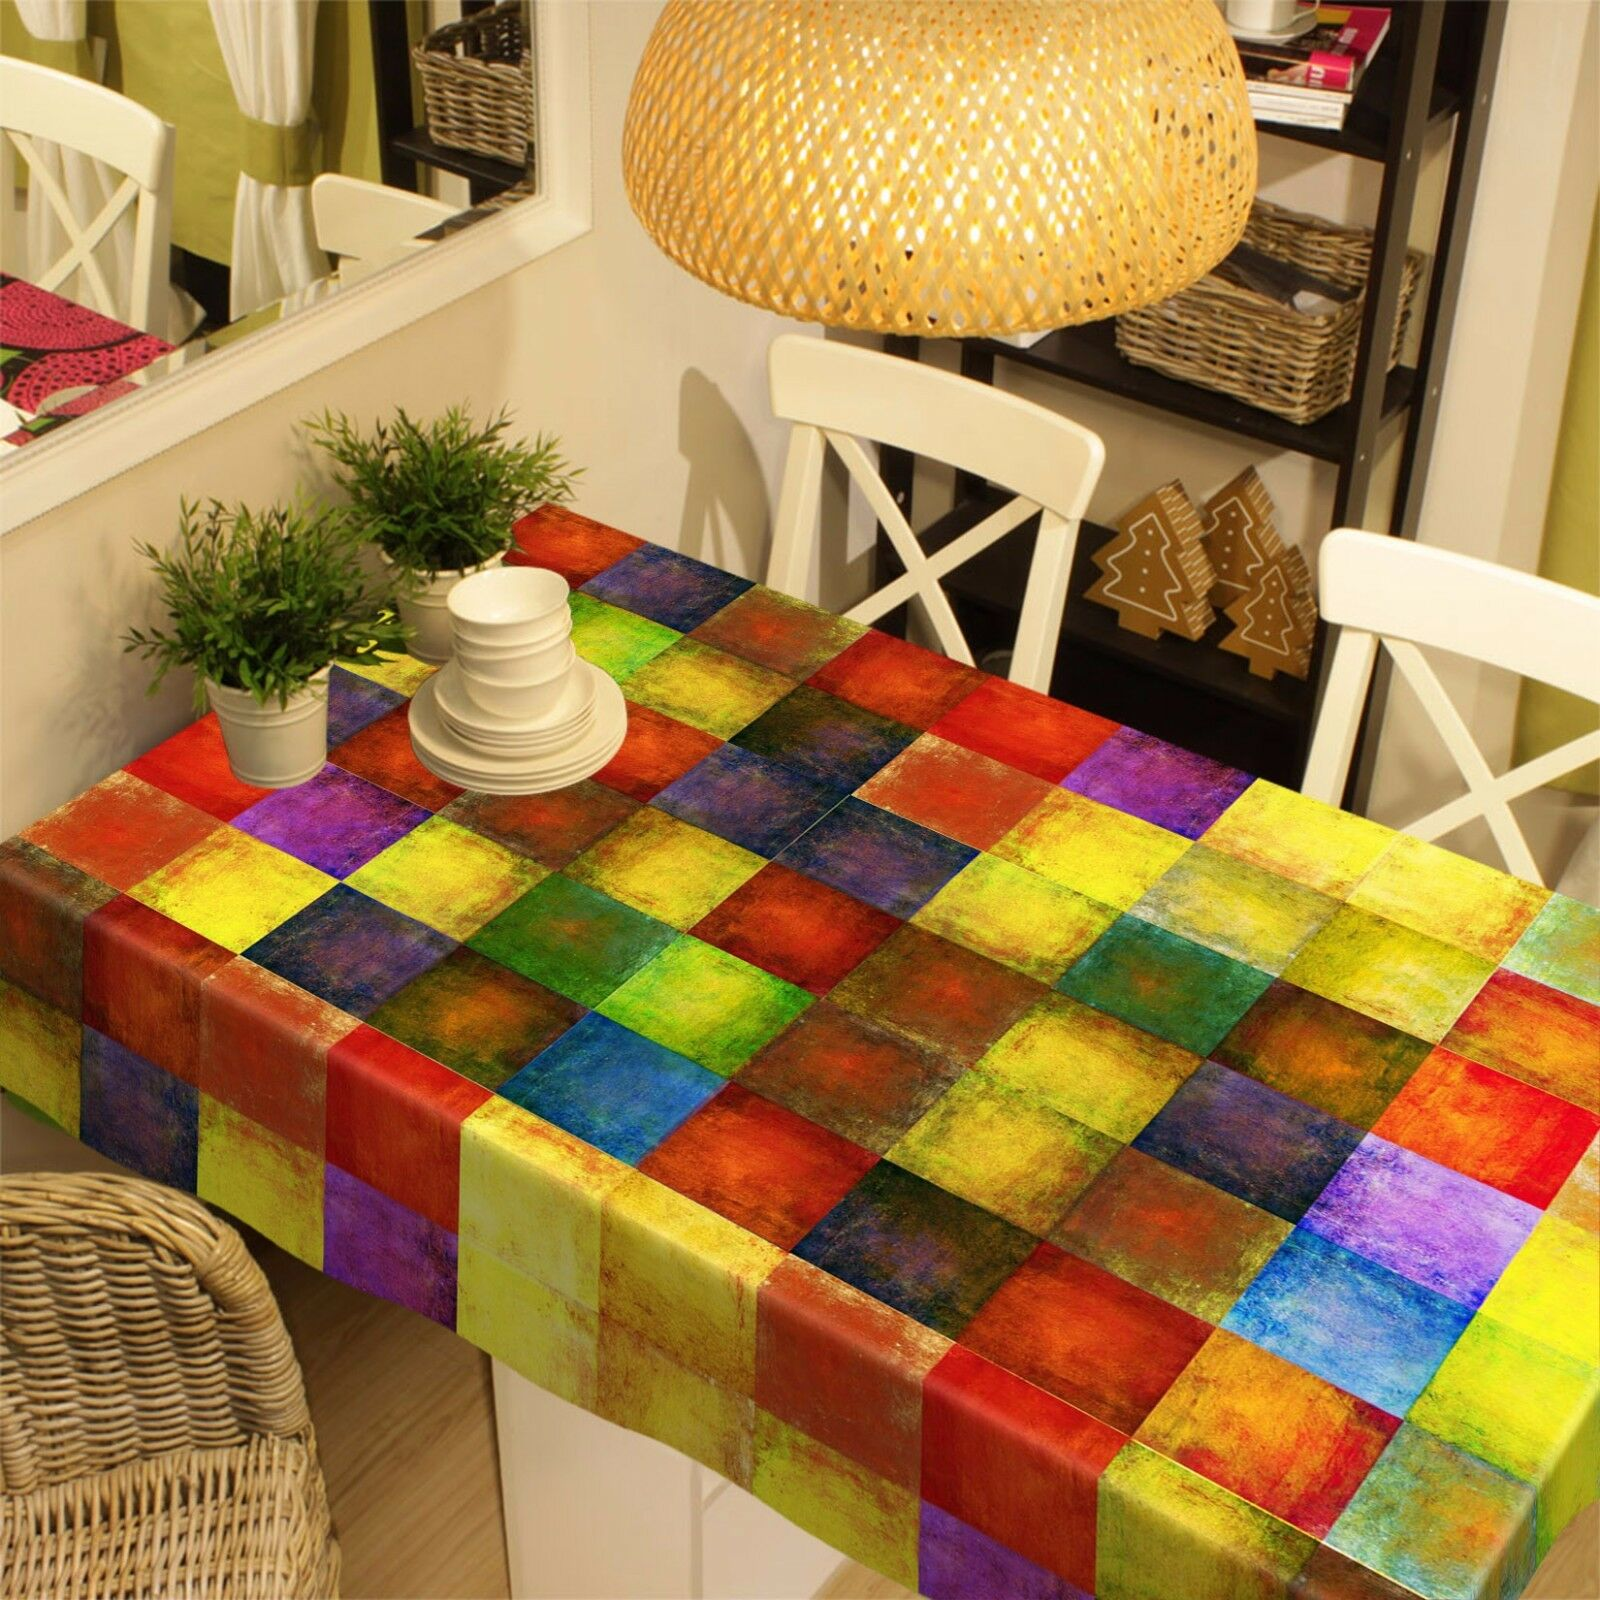 3D Farbe box80 Tablecloth Table Cover Cloth Cloth Cloth Birthday Party Event AJ WALLPAPER UK 7a3782